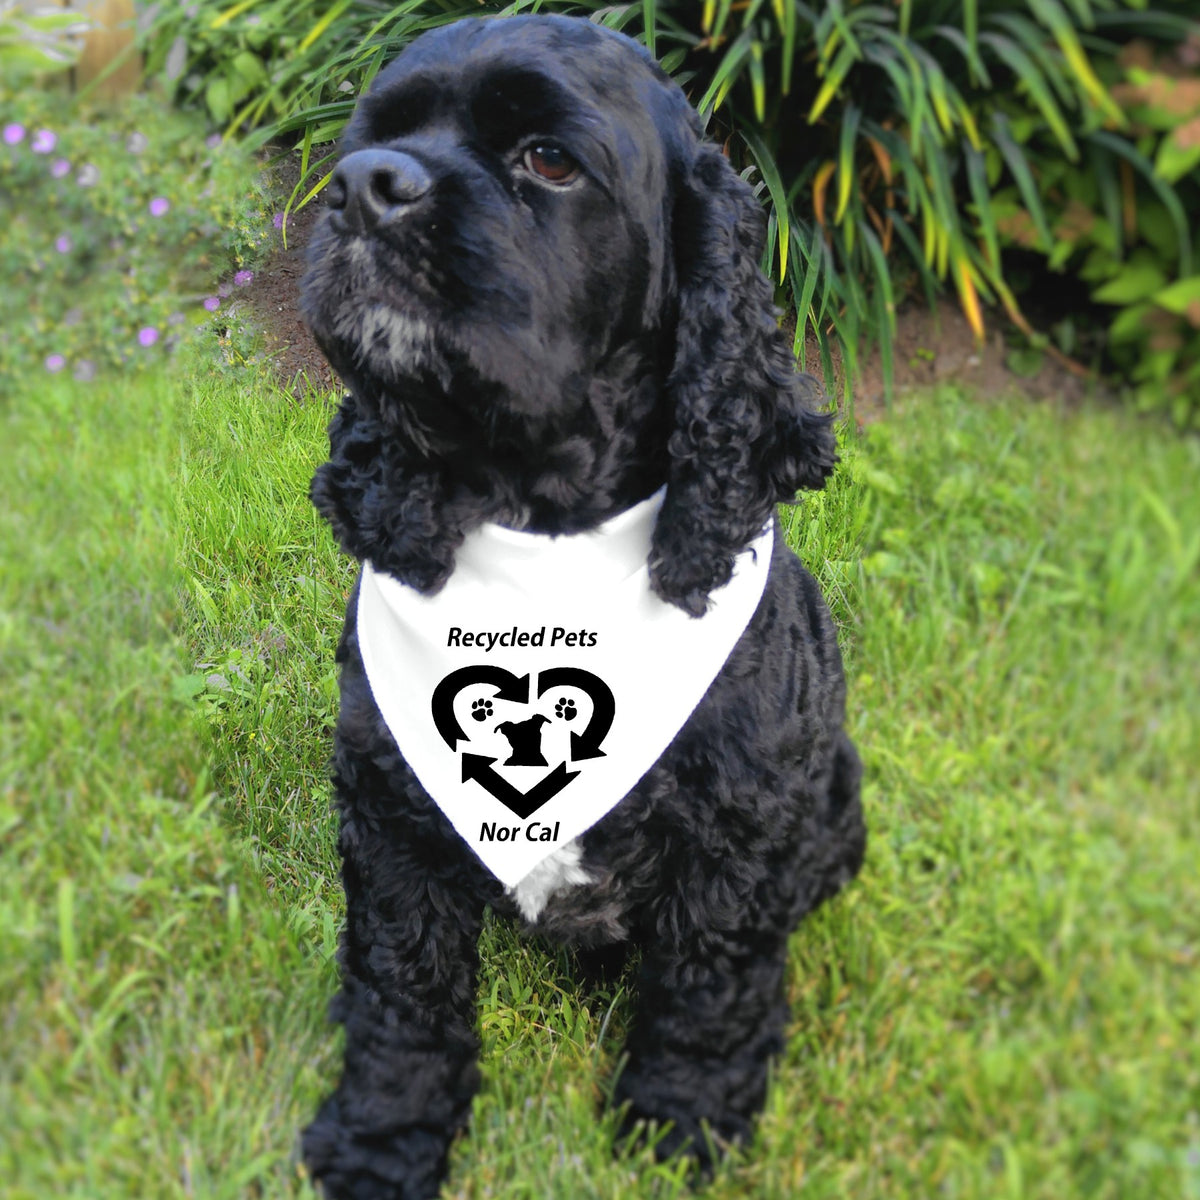 Recycled Pets NorCal Doggie Bandana